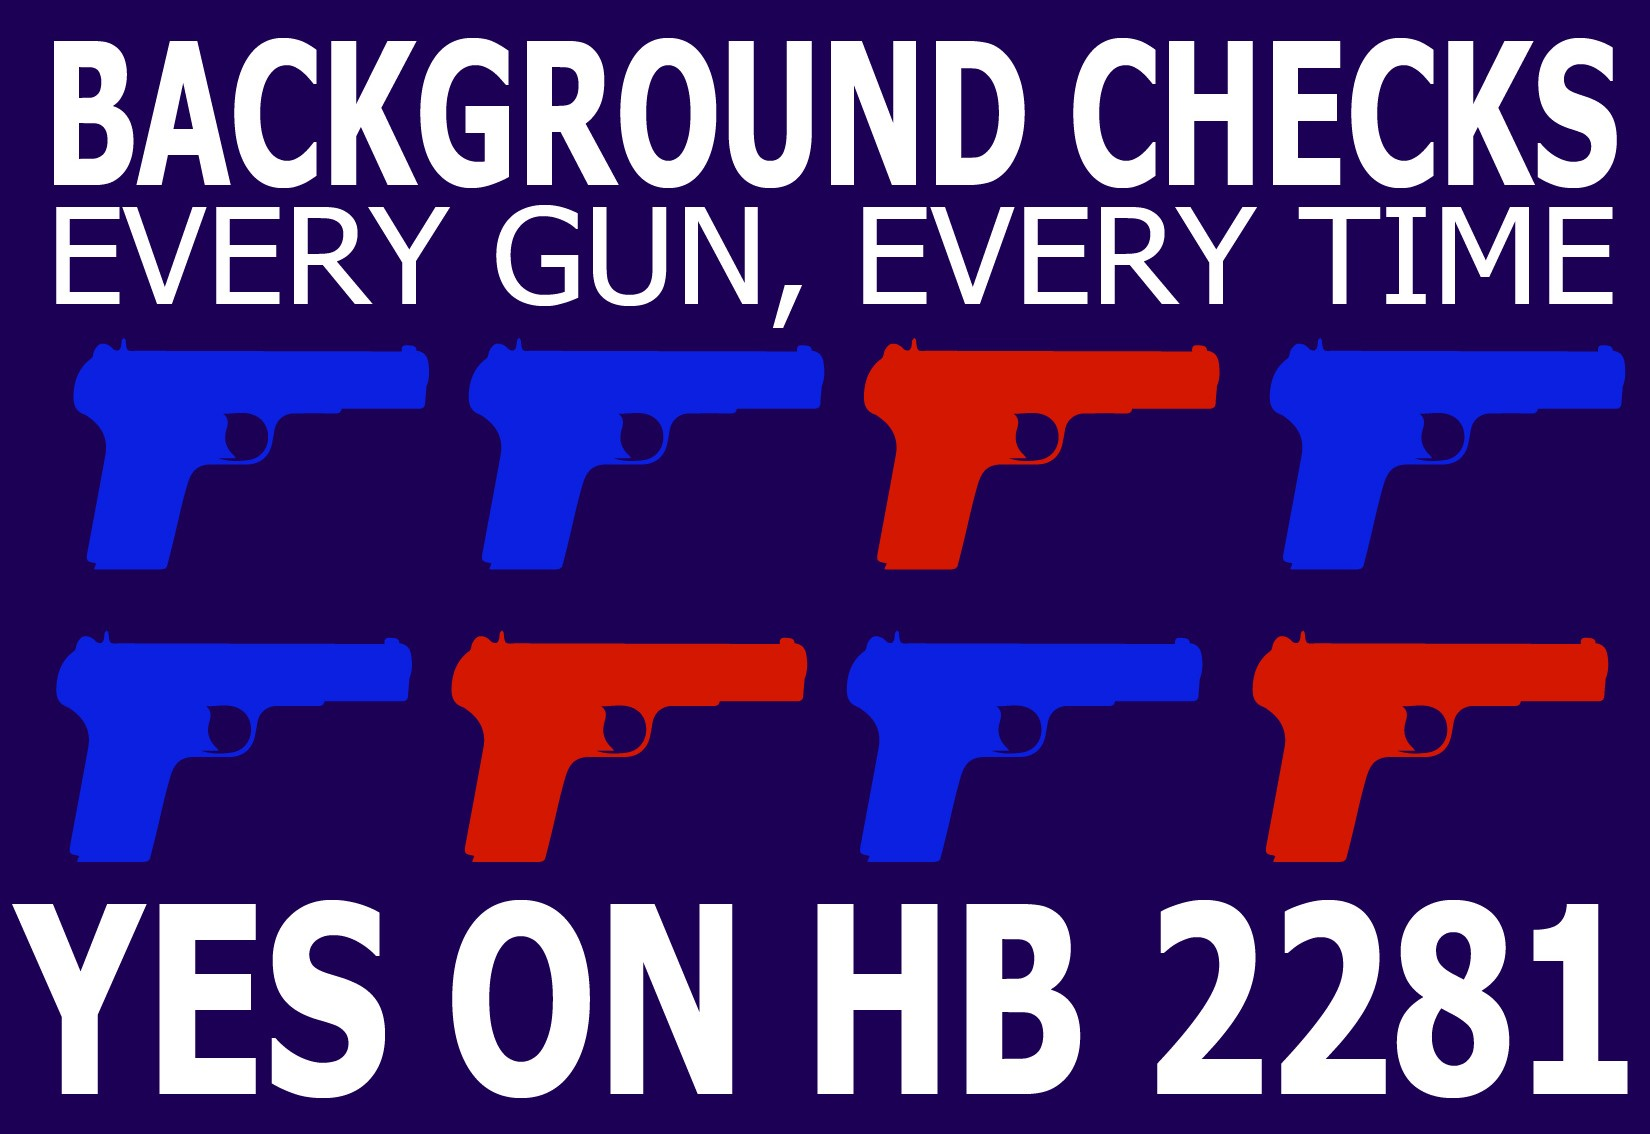 Yes on HB 2281